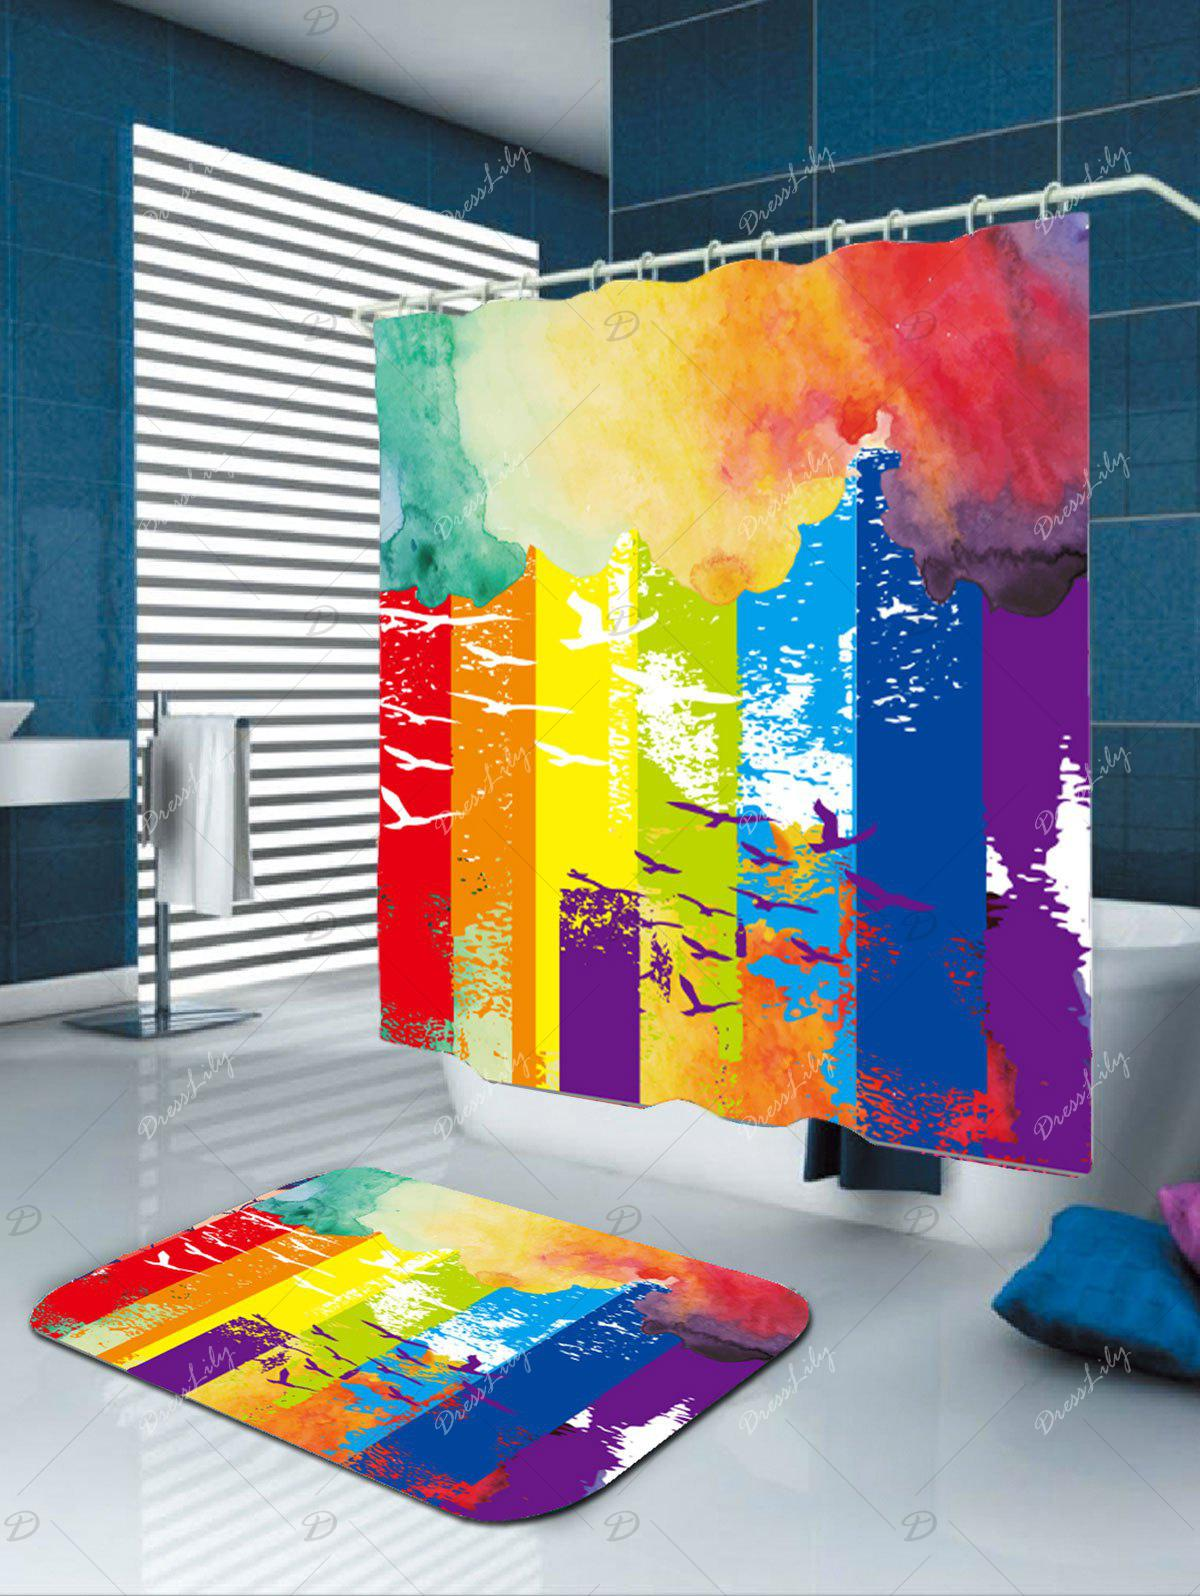 Oil Painting Bird Abstract Print Fabric Shower Curtain - COLORFUL W71 INCH * L79 INCH